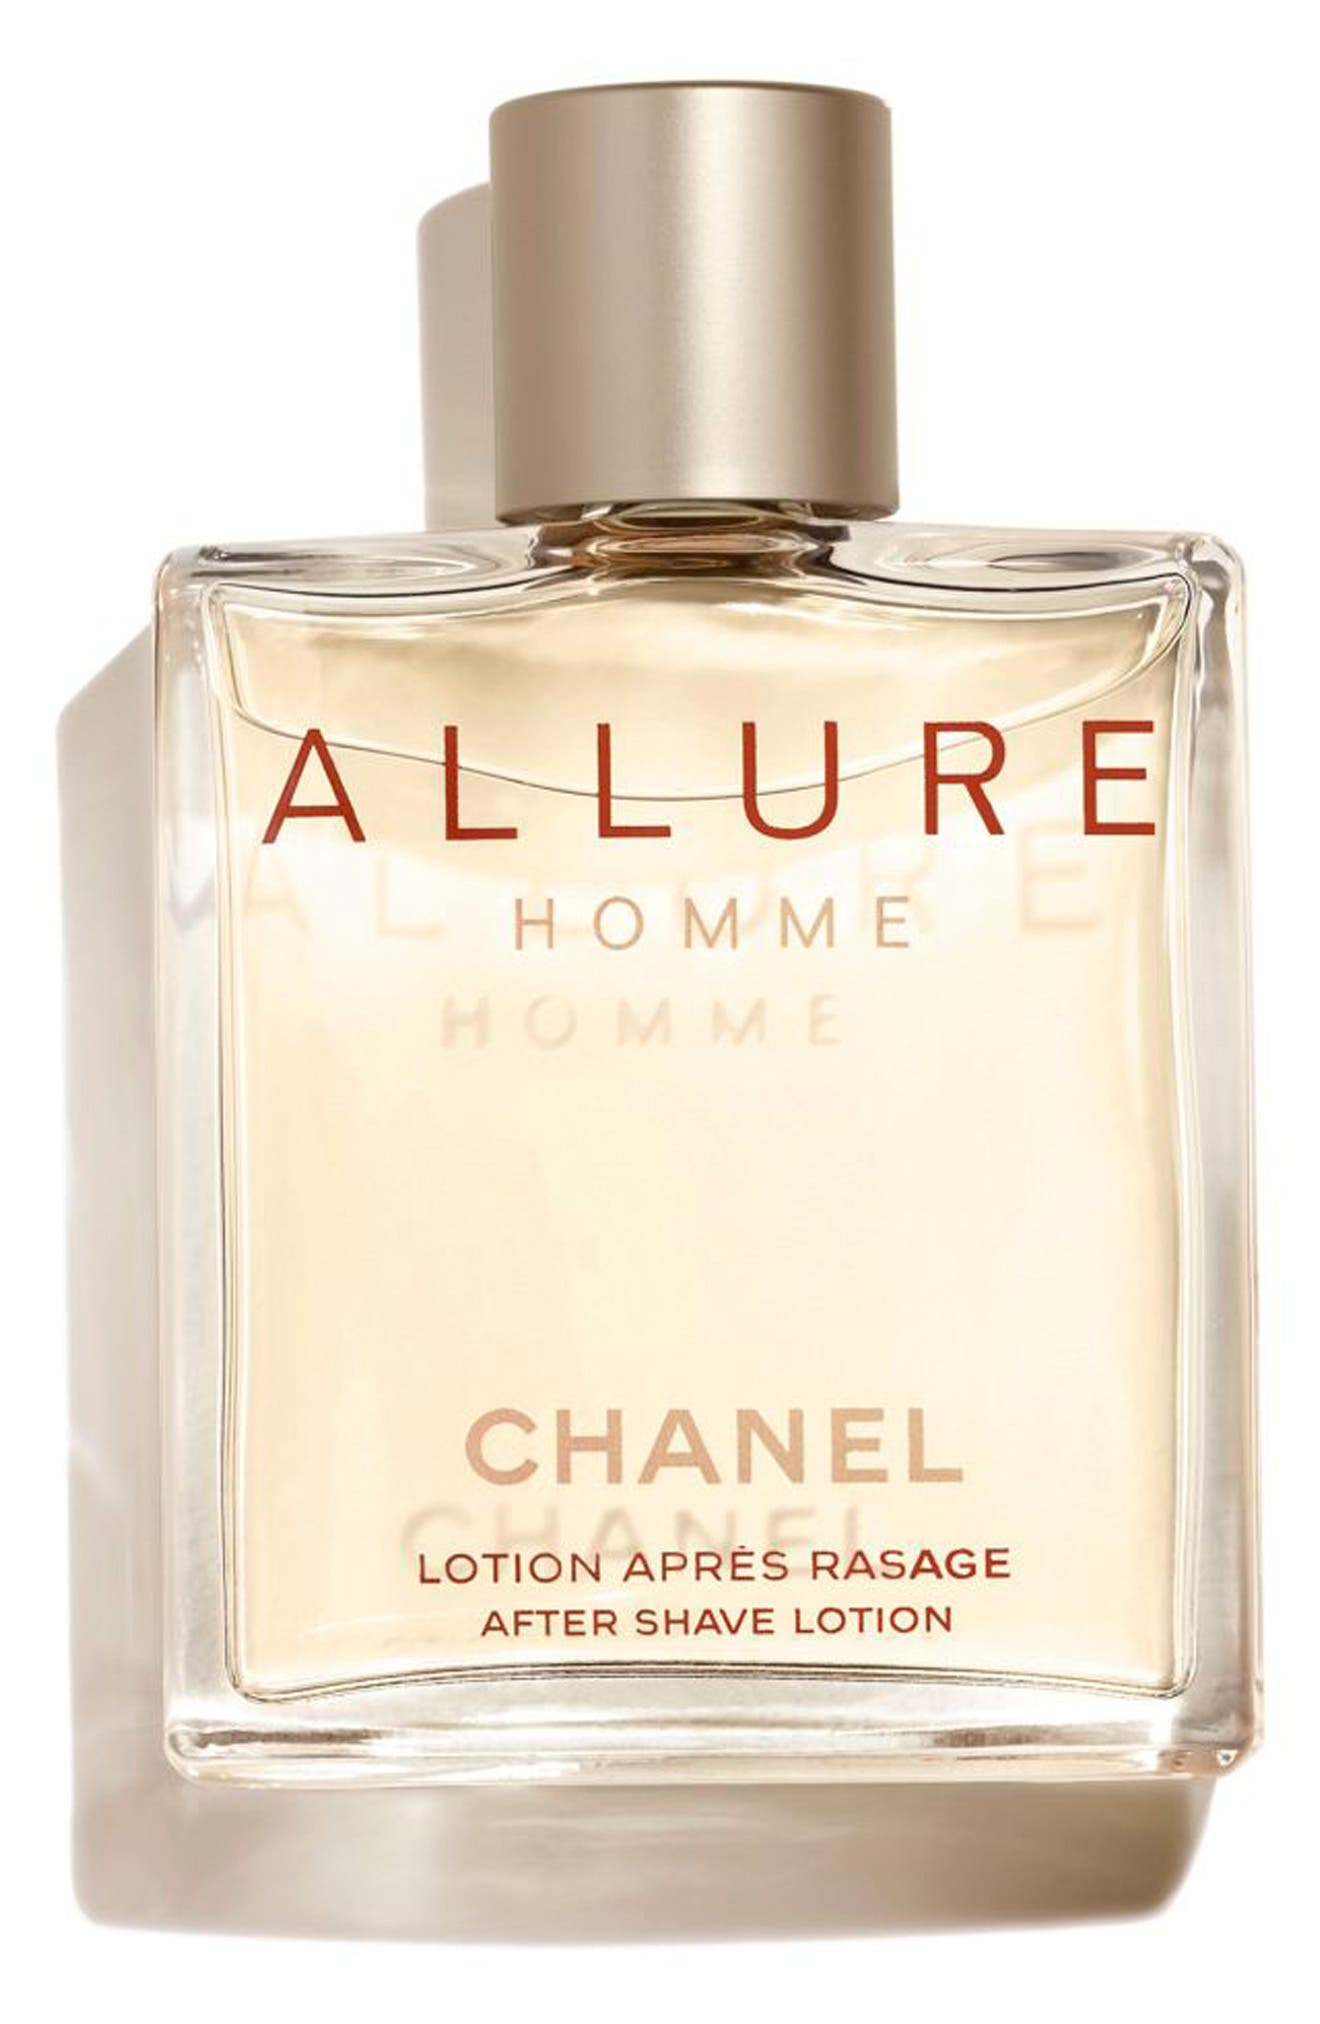 CHANEL,                             ALLURE HOMME<br />After Shave Lotion,                             Alternate thumbnail 2, color,                             001